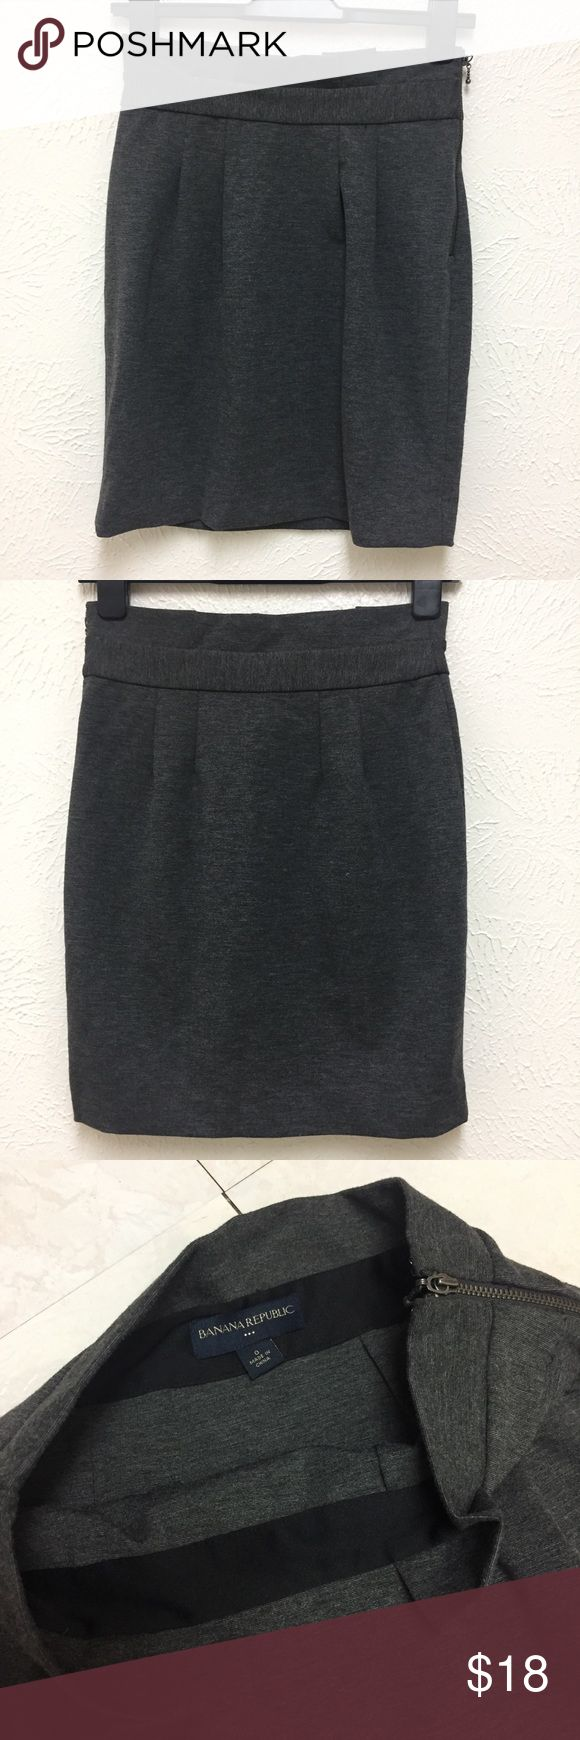 EUC Banana Republic Skirt Size 0 See pictures for details and conditions.   ❌NO trade ❌Lowball Offer Will be IGNORED&BLOCKED.  ⚡️Serious Buyer ONLY⚡️NO DRAMA! ⭐️Same/next day shipping via USPS ⚠I video record all sales from packing to shipping so we are both protected ⚠ Banana Republic Skirts